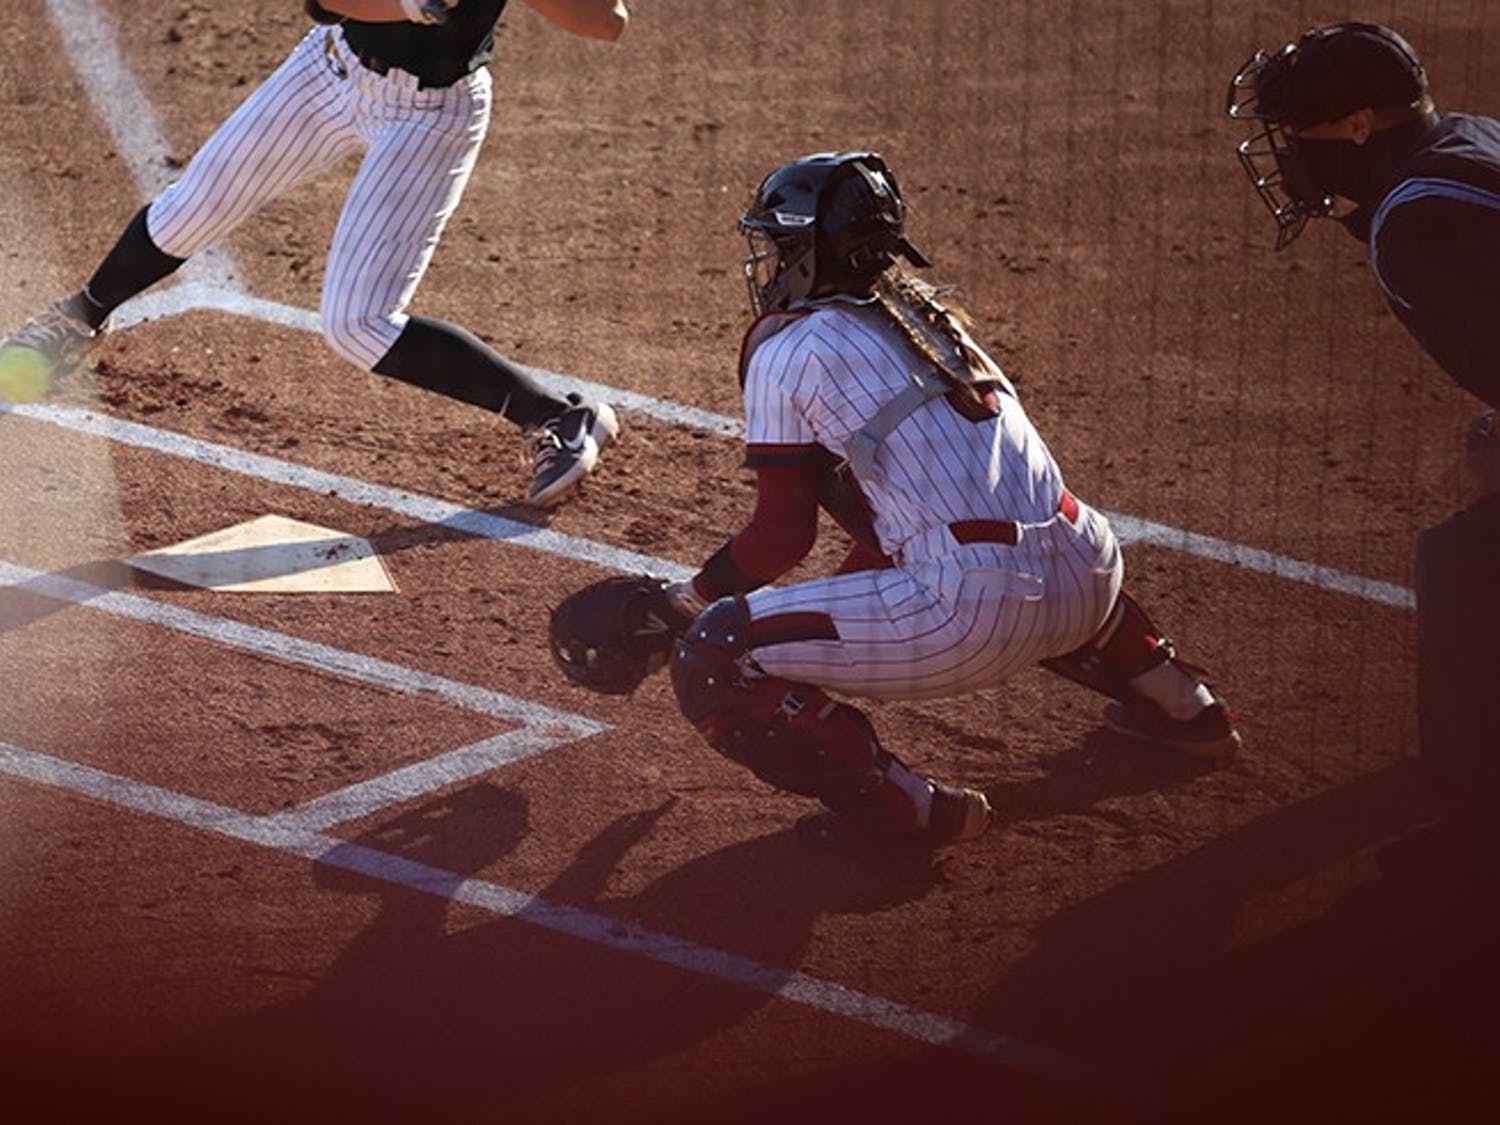 Junior catcher Jordan Fabian prepares to catch the ball while her teammate prepares to pitch.